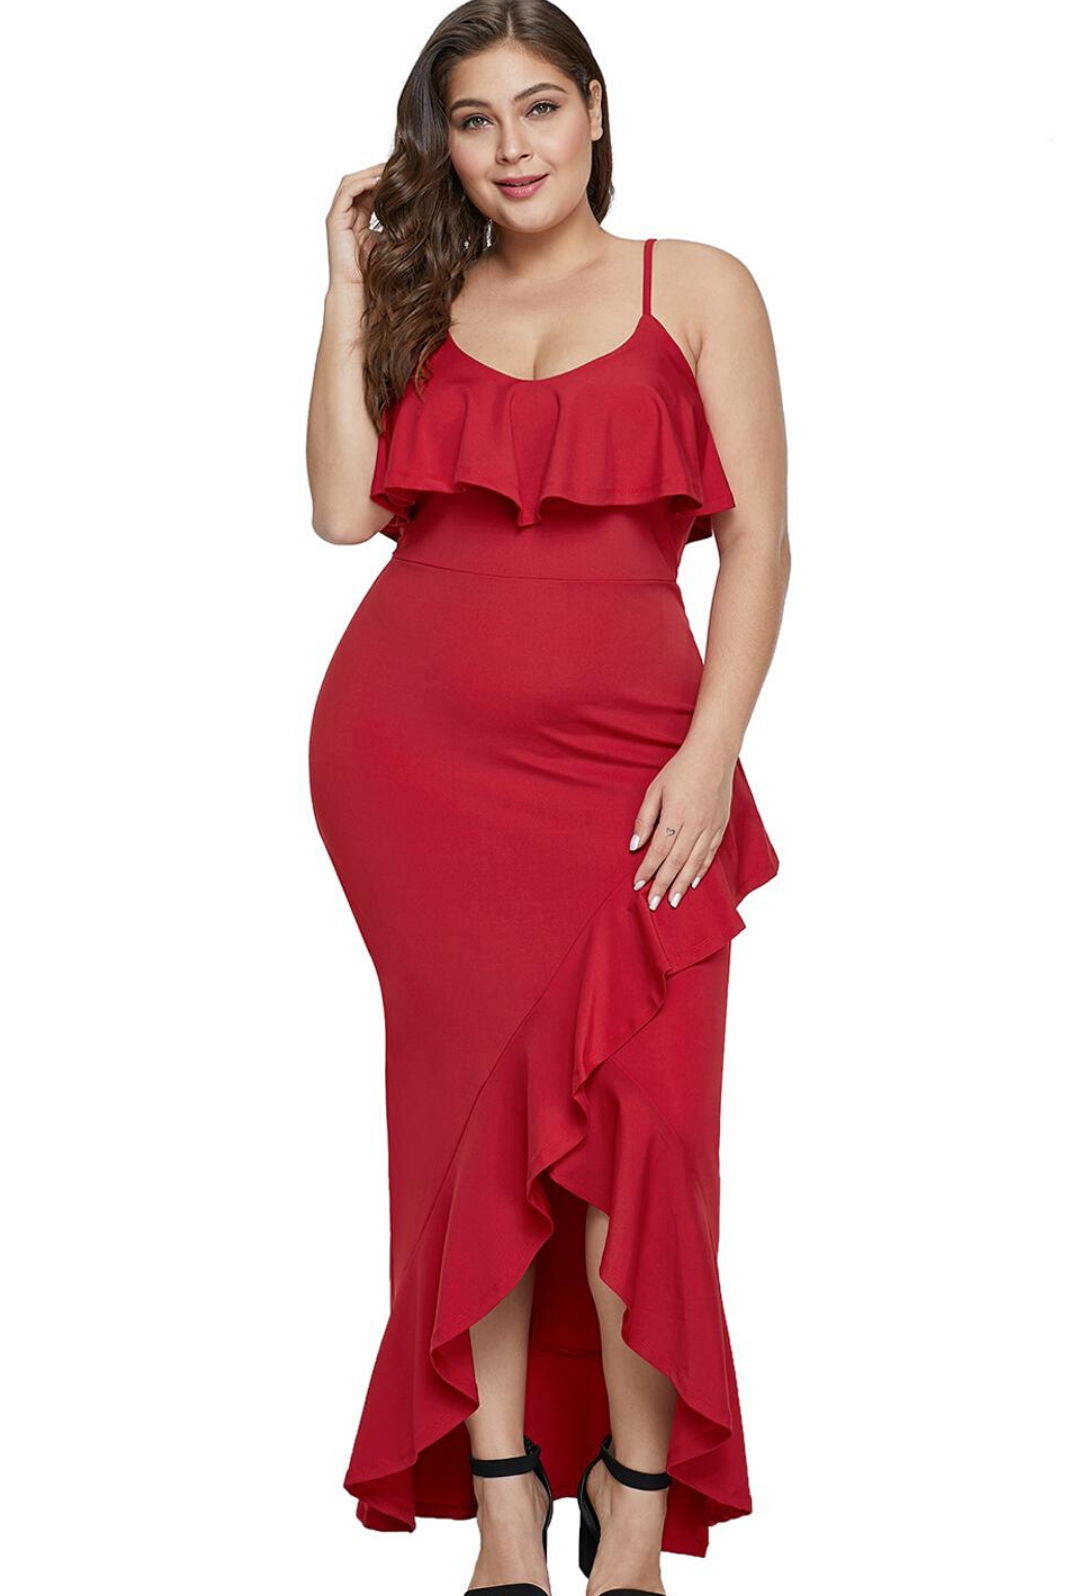 Red Plus Size Ruffle Trim Spaghetti Straps Maxi Dress